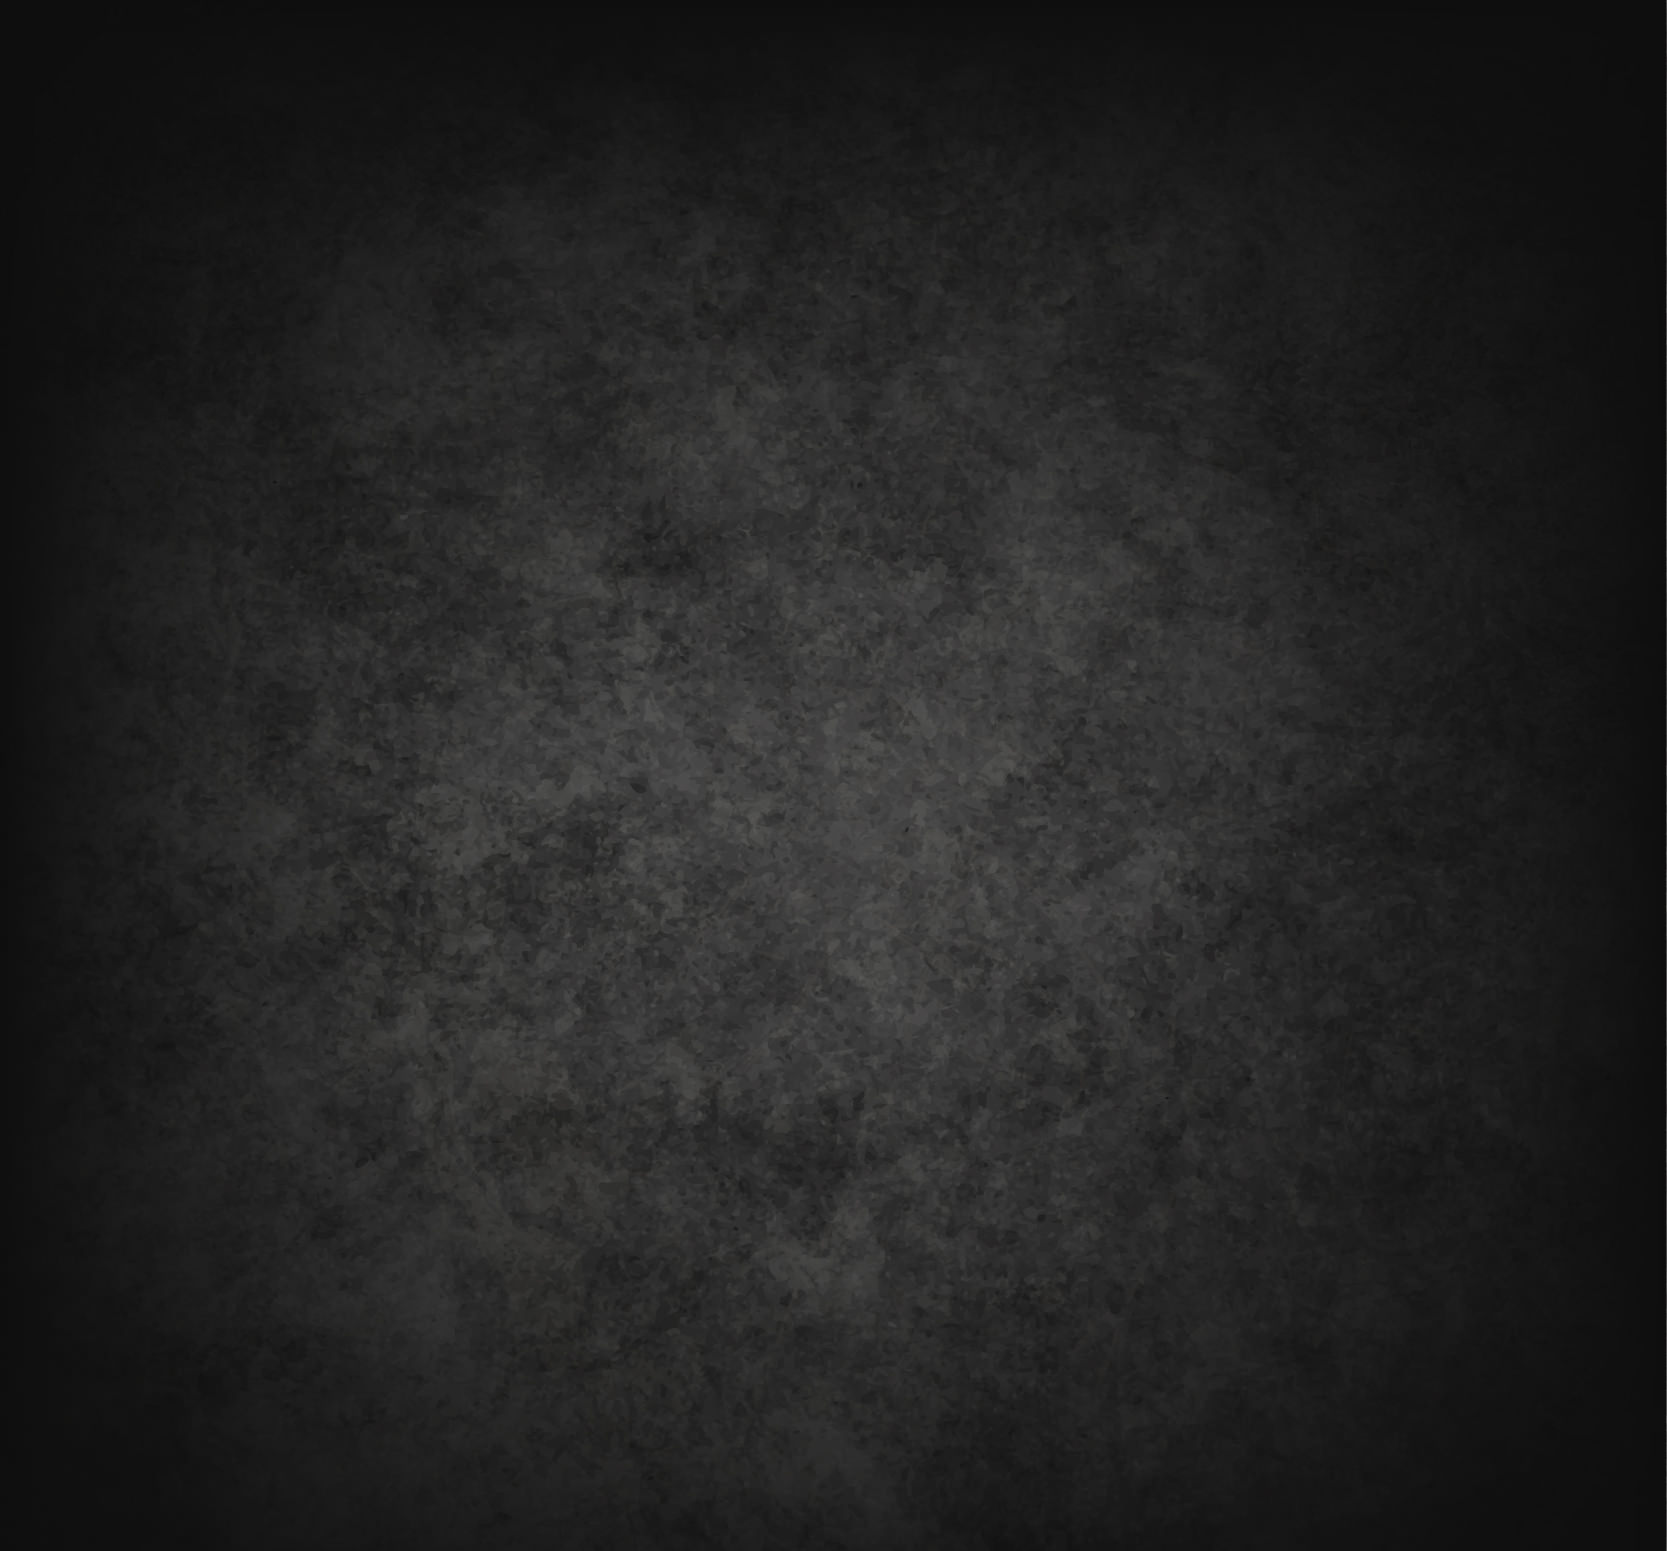 Abstract Black Grunge Wallpaper Background